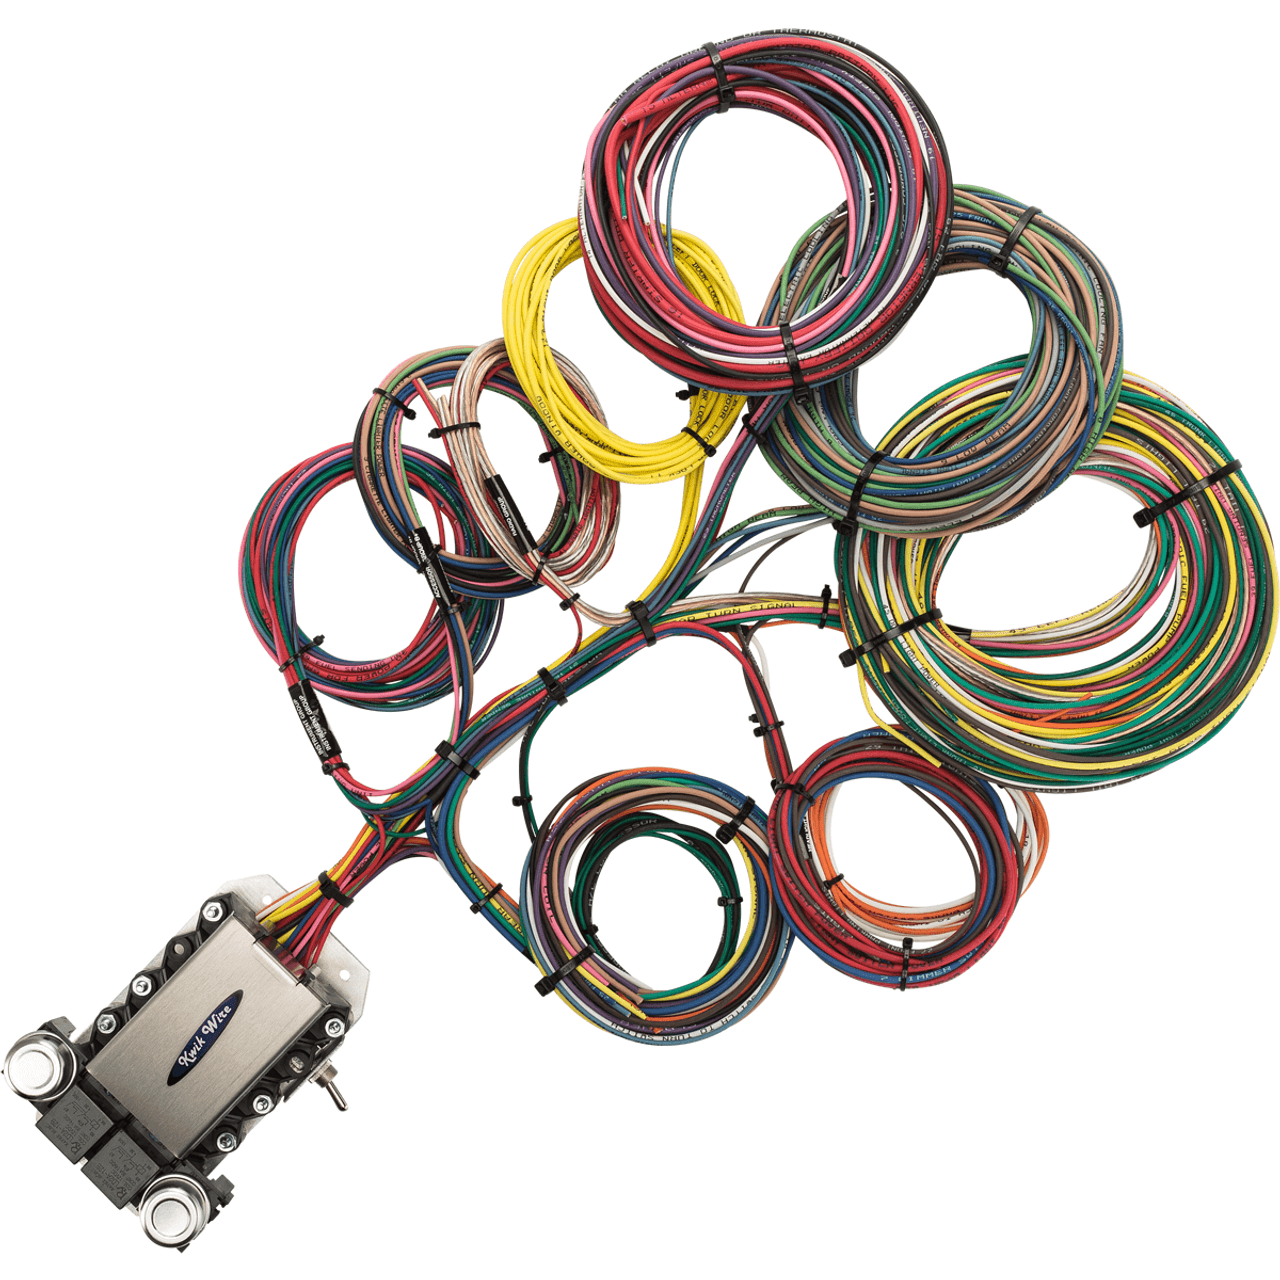 hight resolution of 20 circuit ford wire harness kwikwire com electrify your rideford wire harness 13